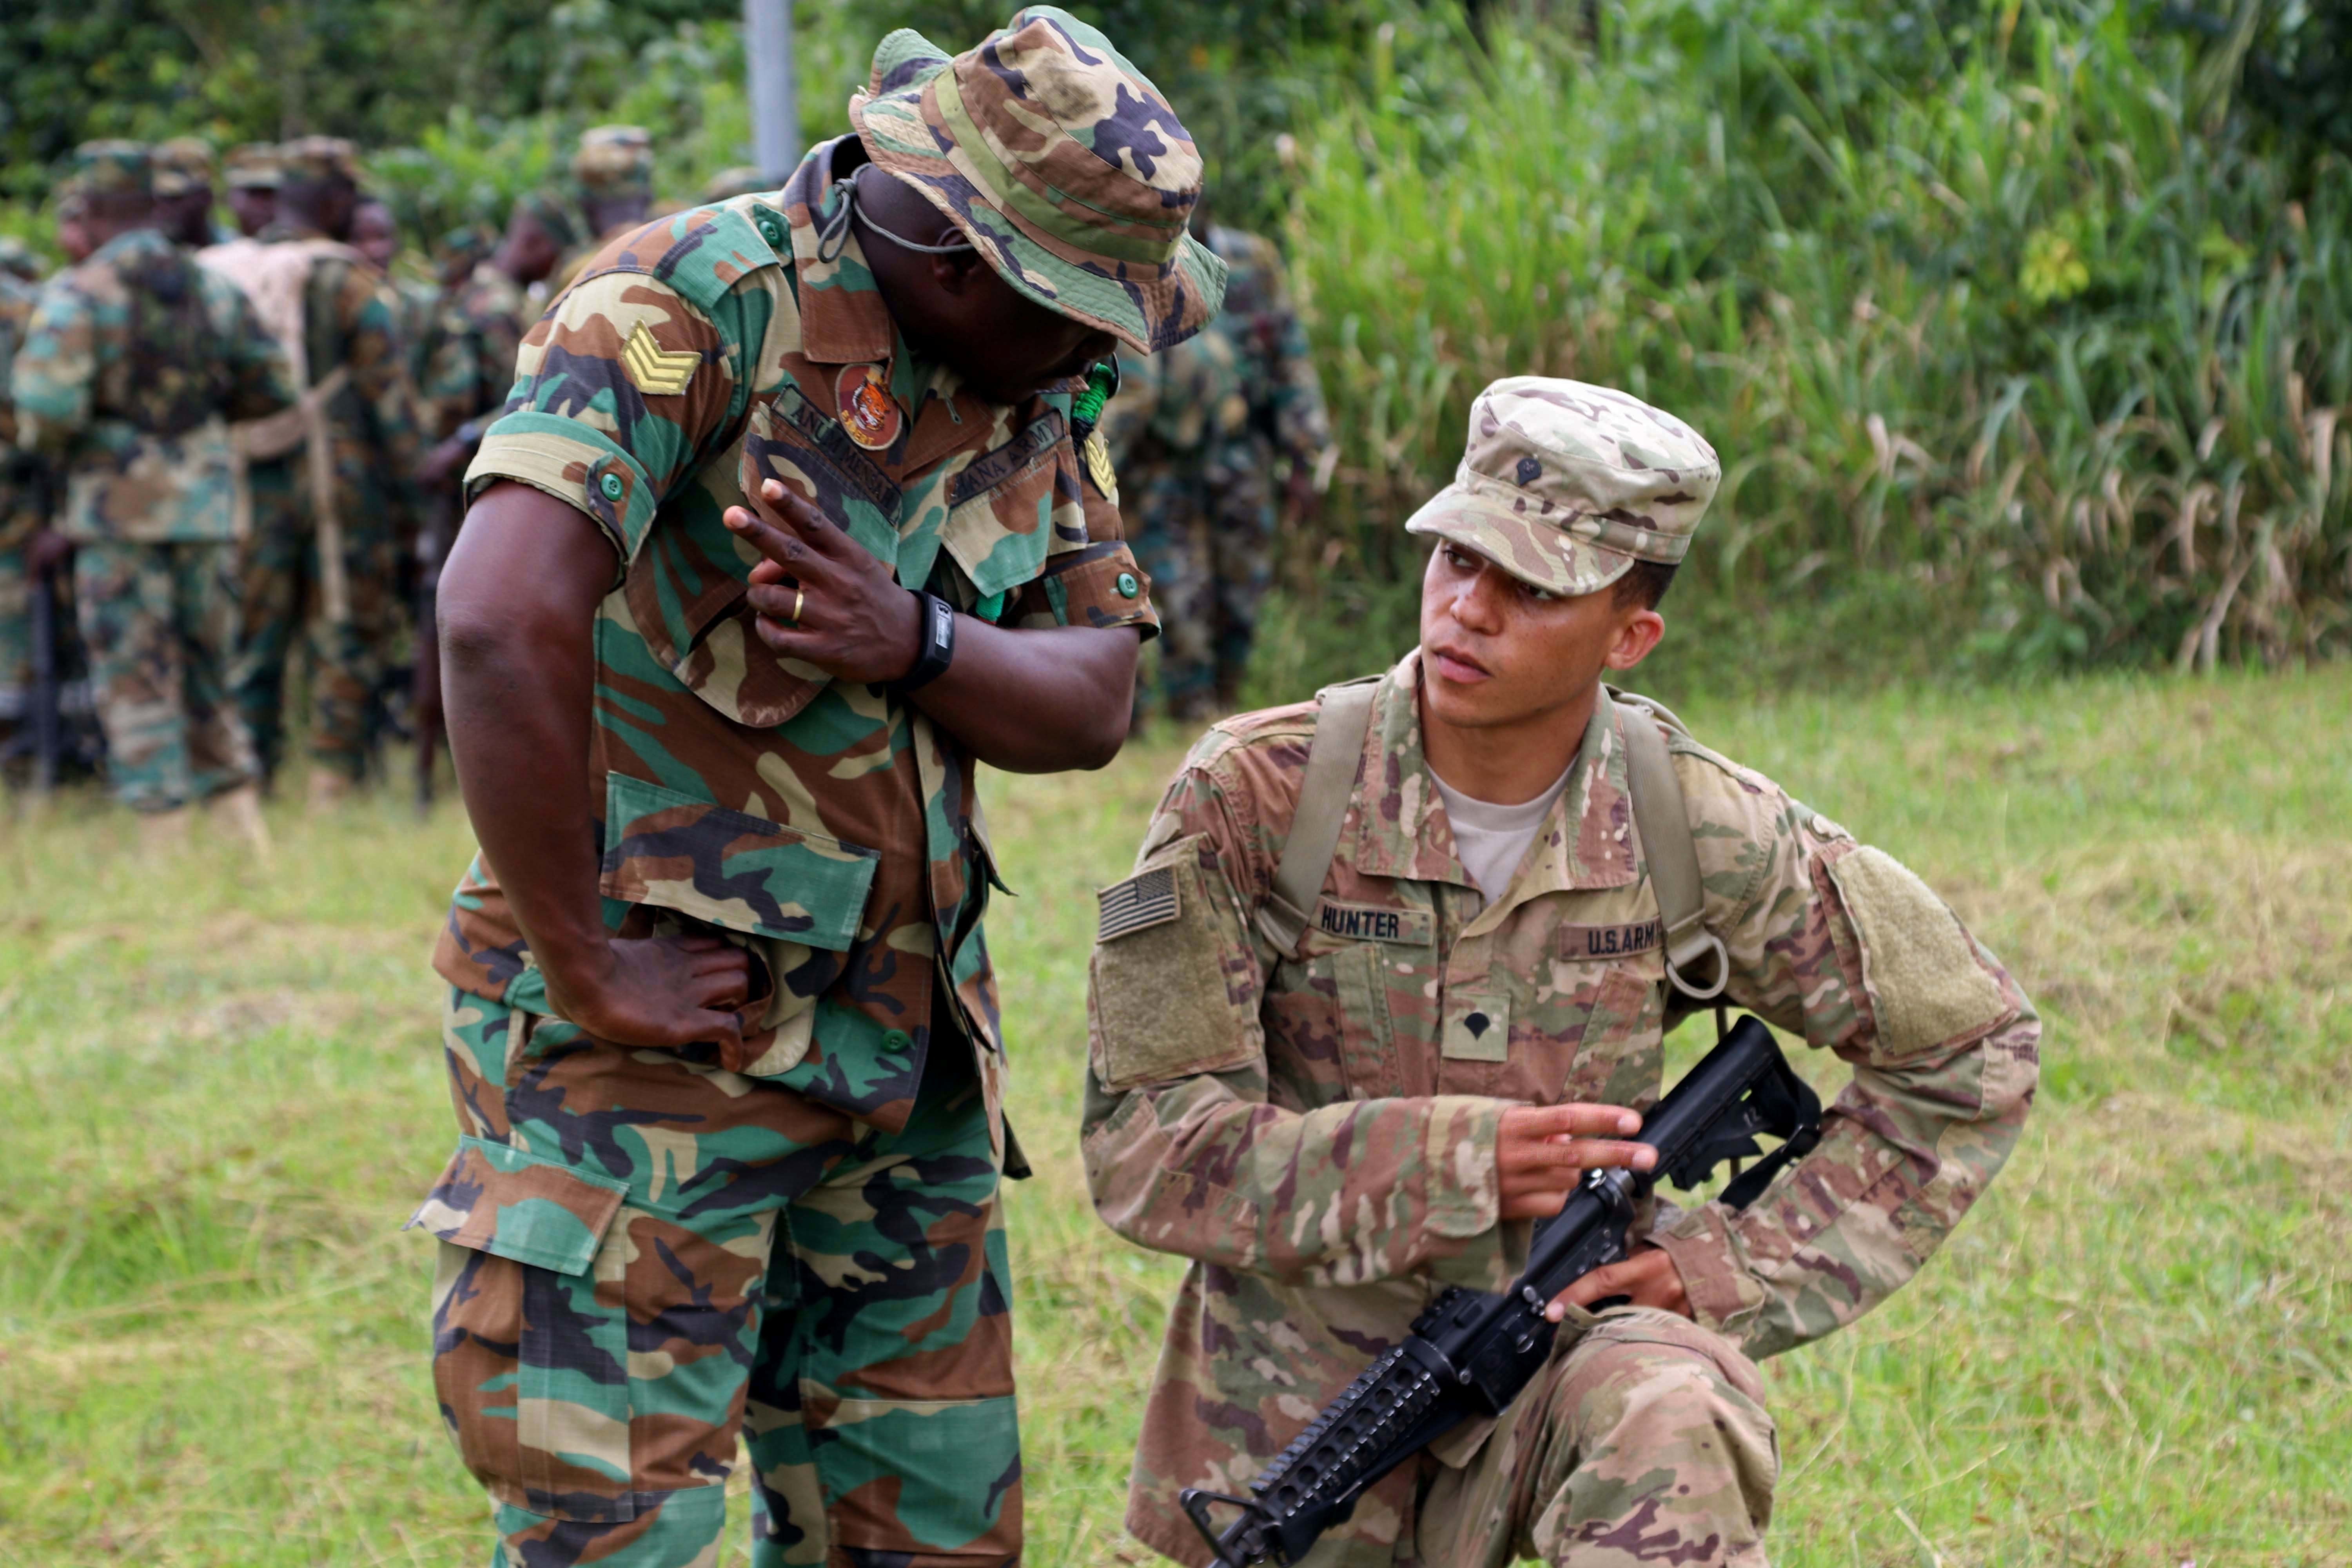 U.S. Army Soldiers receive training on jungle movements and signals at Jungle Warfare School, Achiase Military Base, Akim Achiase, Ghana, August 1, 2018. The Jungle Warfare School is a series of situational training exercises designed to train participants in counter-insurgency and internal security operations. (U.S. Army photo by Staff Sgt. Charles Stefan)